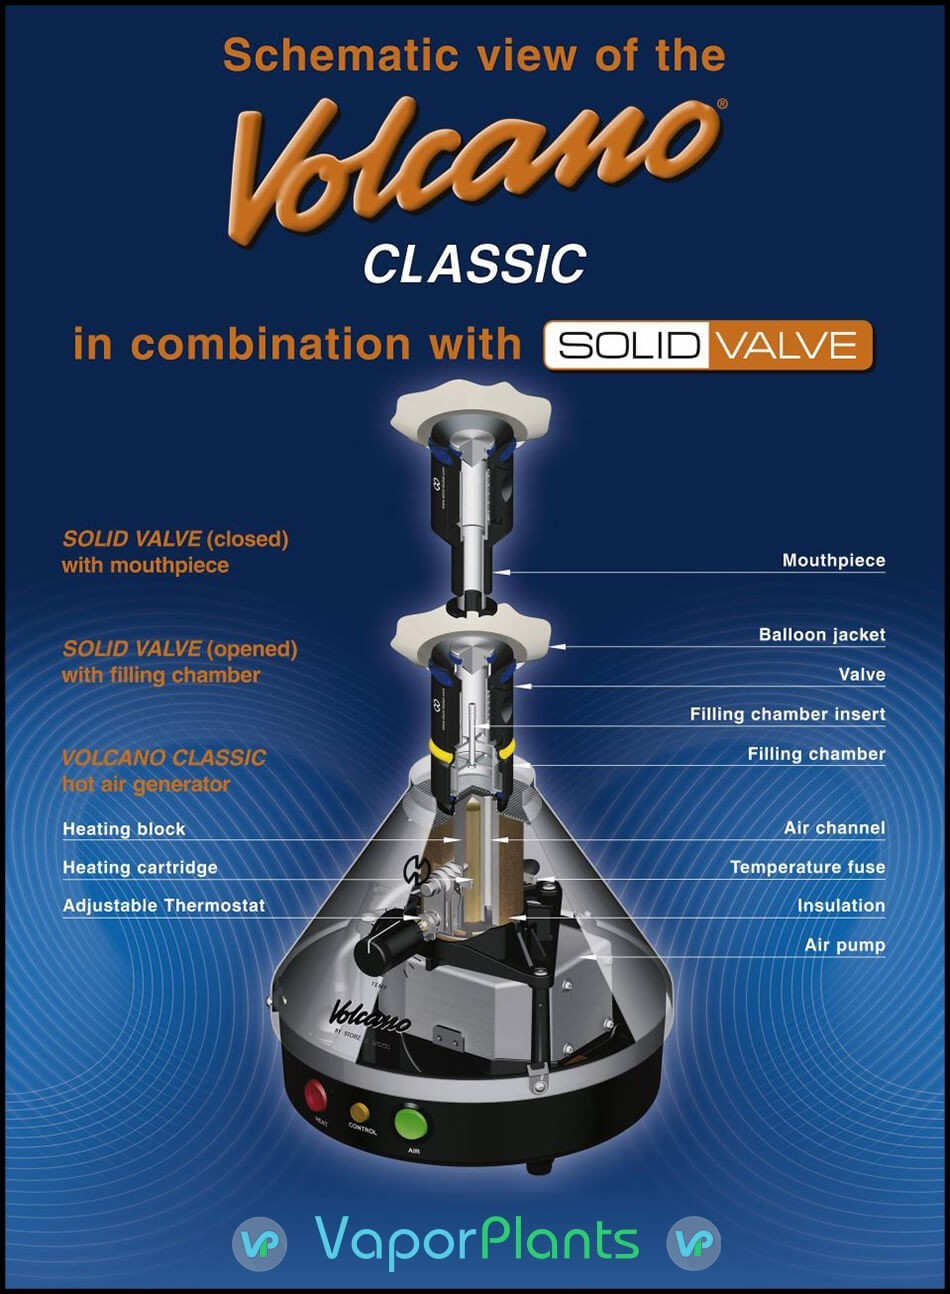 Volcano Vaporizer Classic Dissected Schematic view with solid valve vape mouthpiece